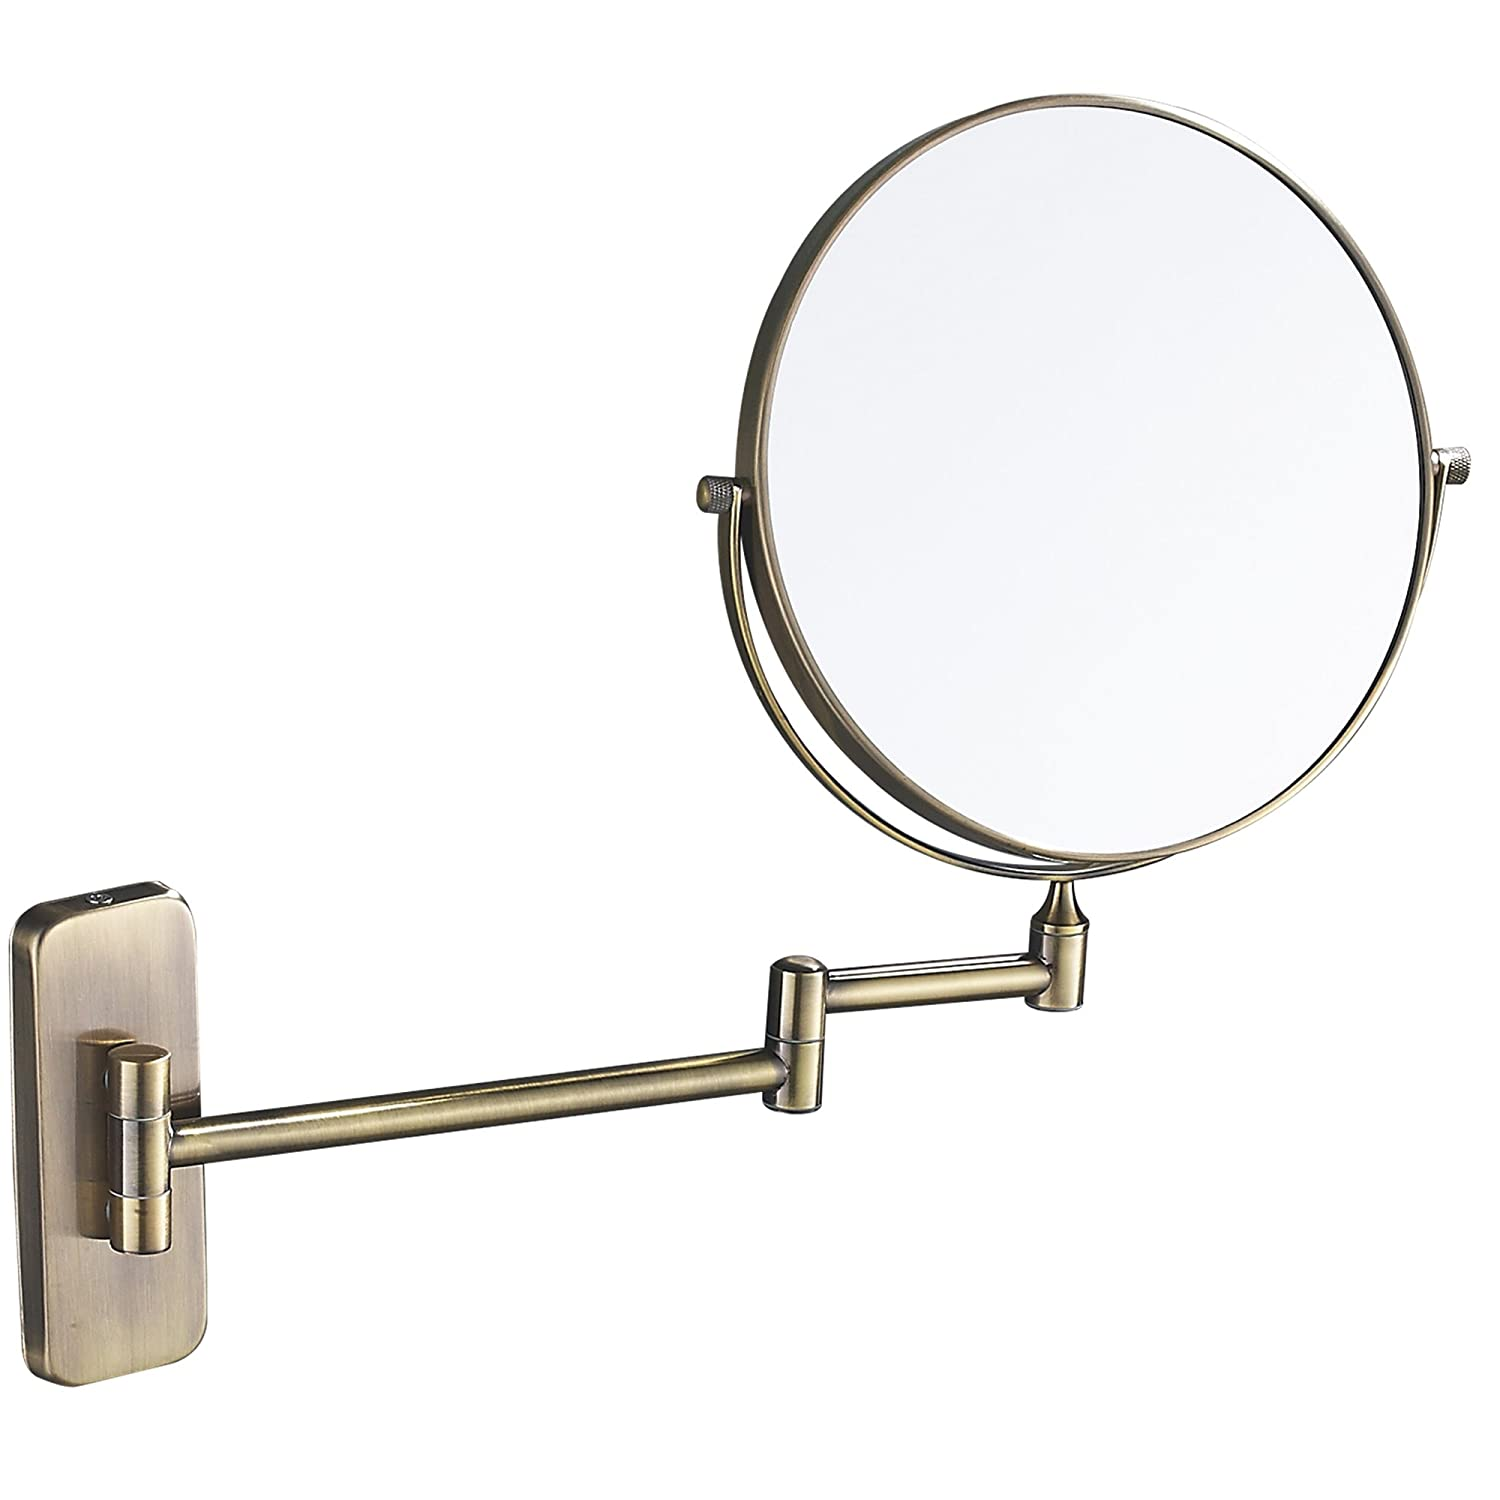 GURUN 8-Inch Double-Sided Wall Mount Makeup Mirror Antique Bronze with 7X Magnification, Brushed Brass M1406K 8in,7X